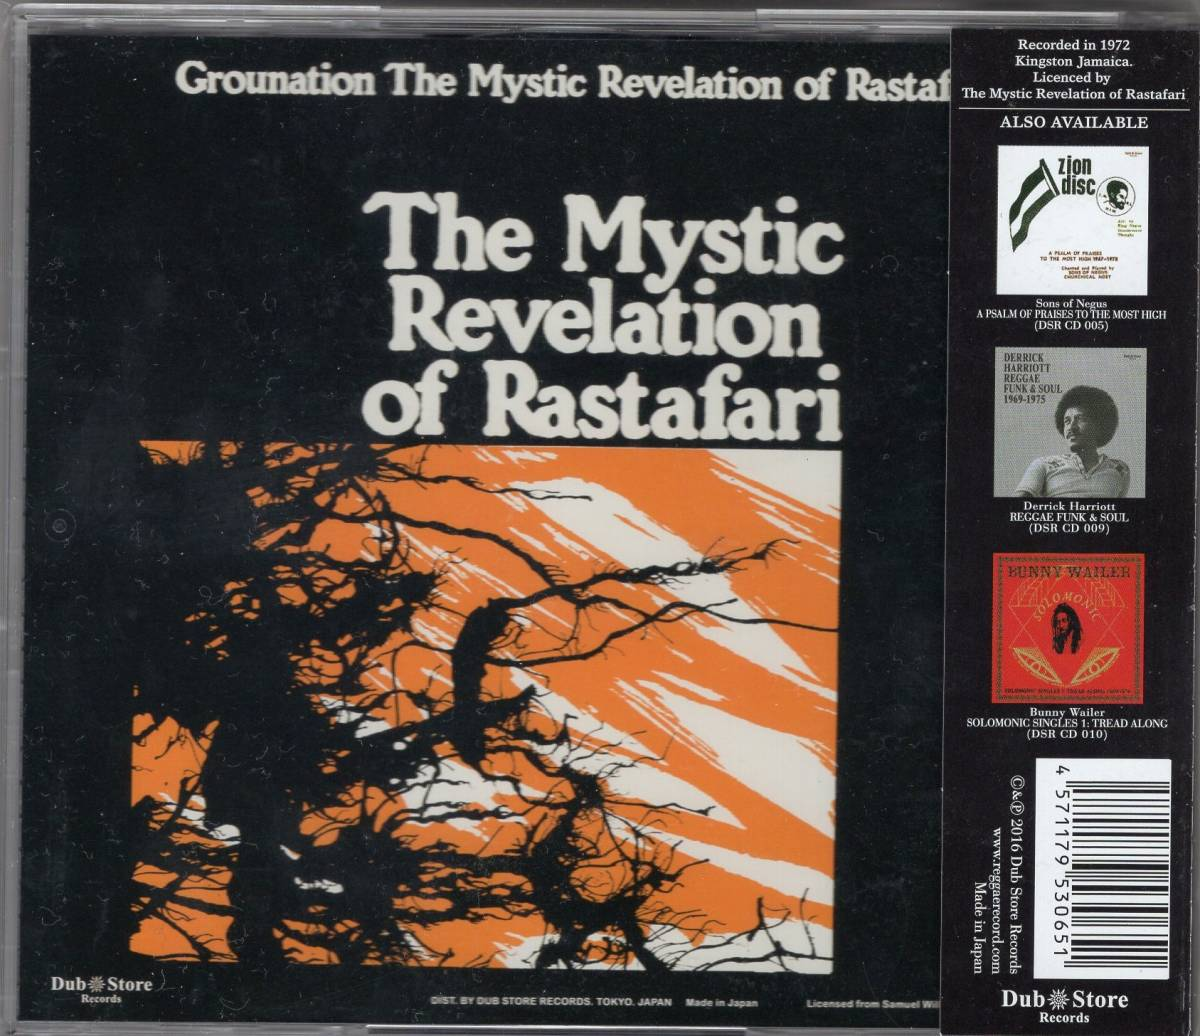 Count Ossie and the Mystic Rev...